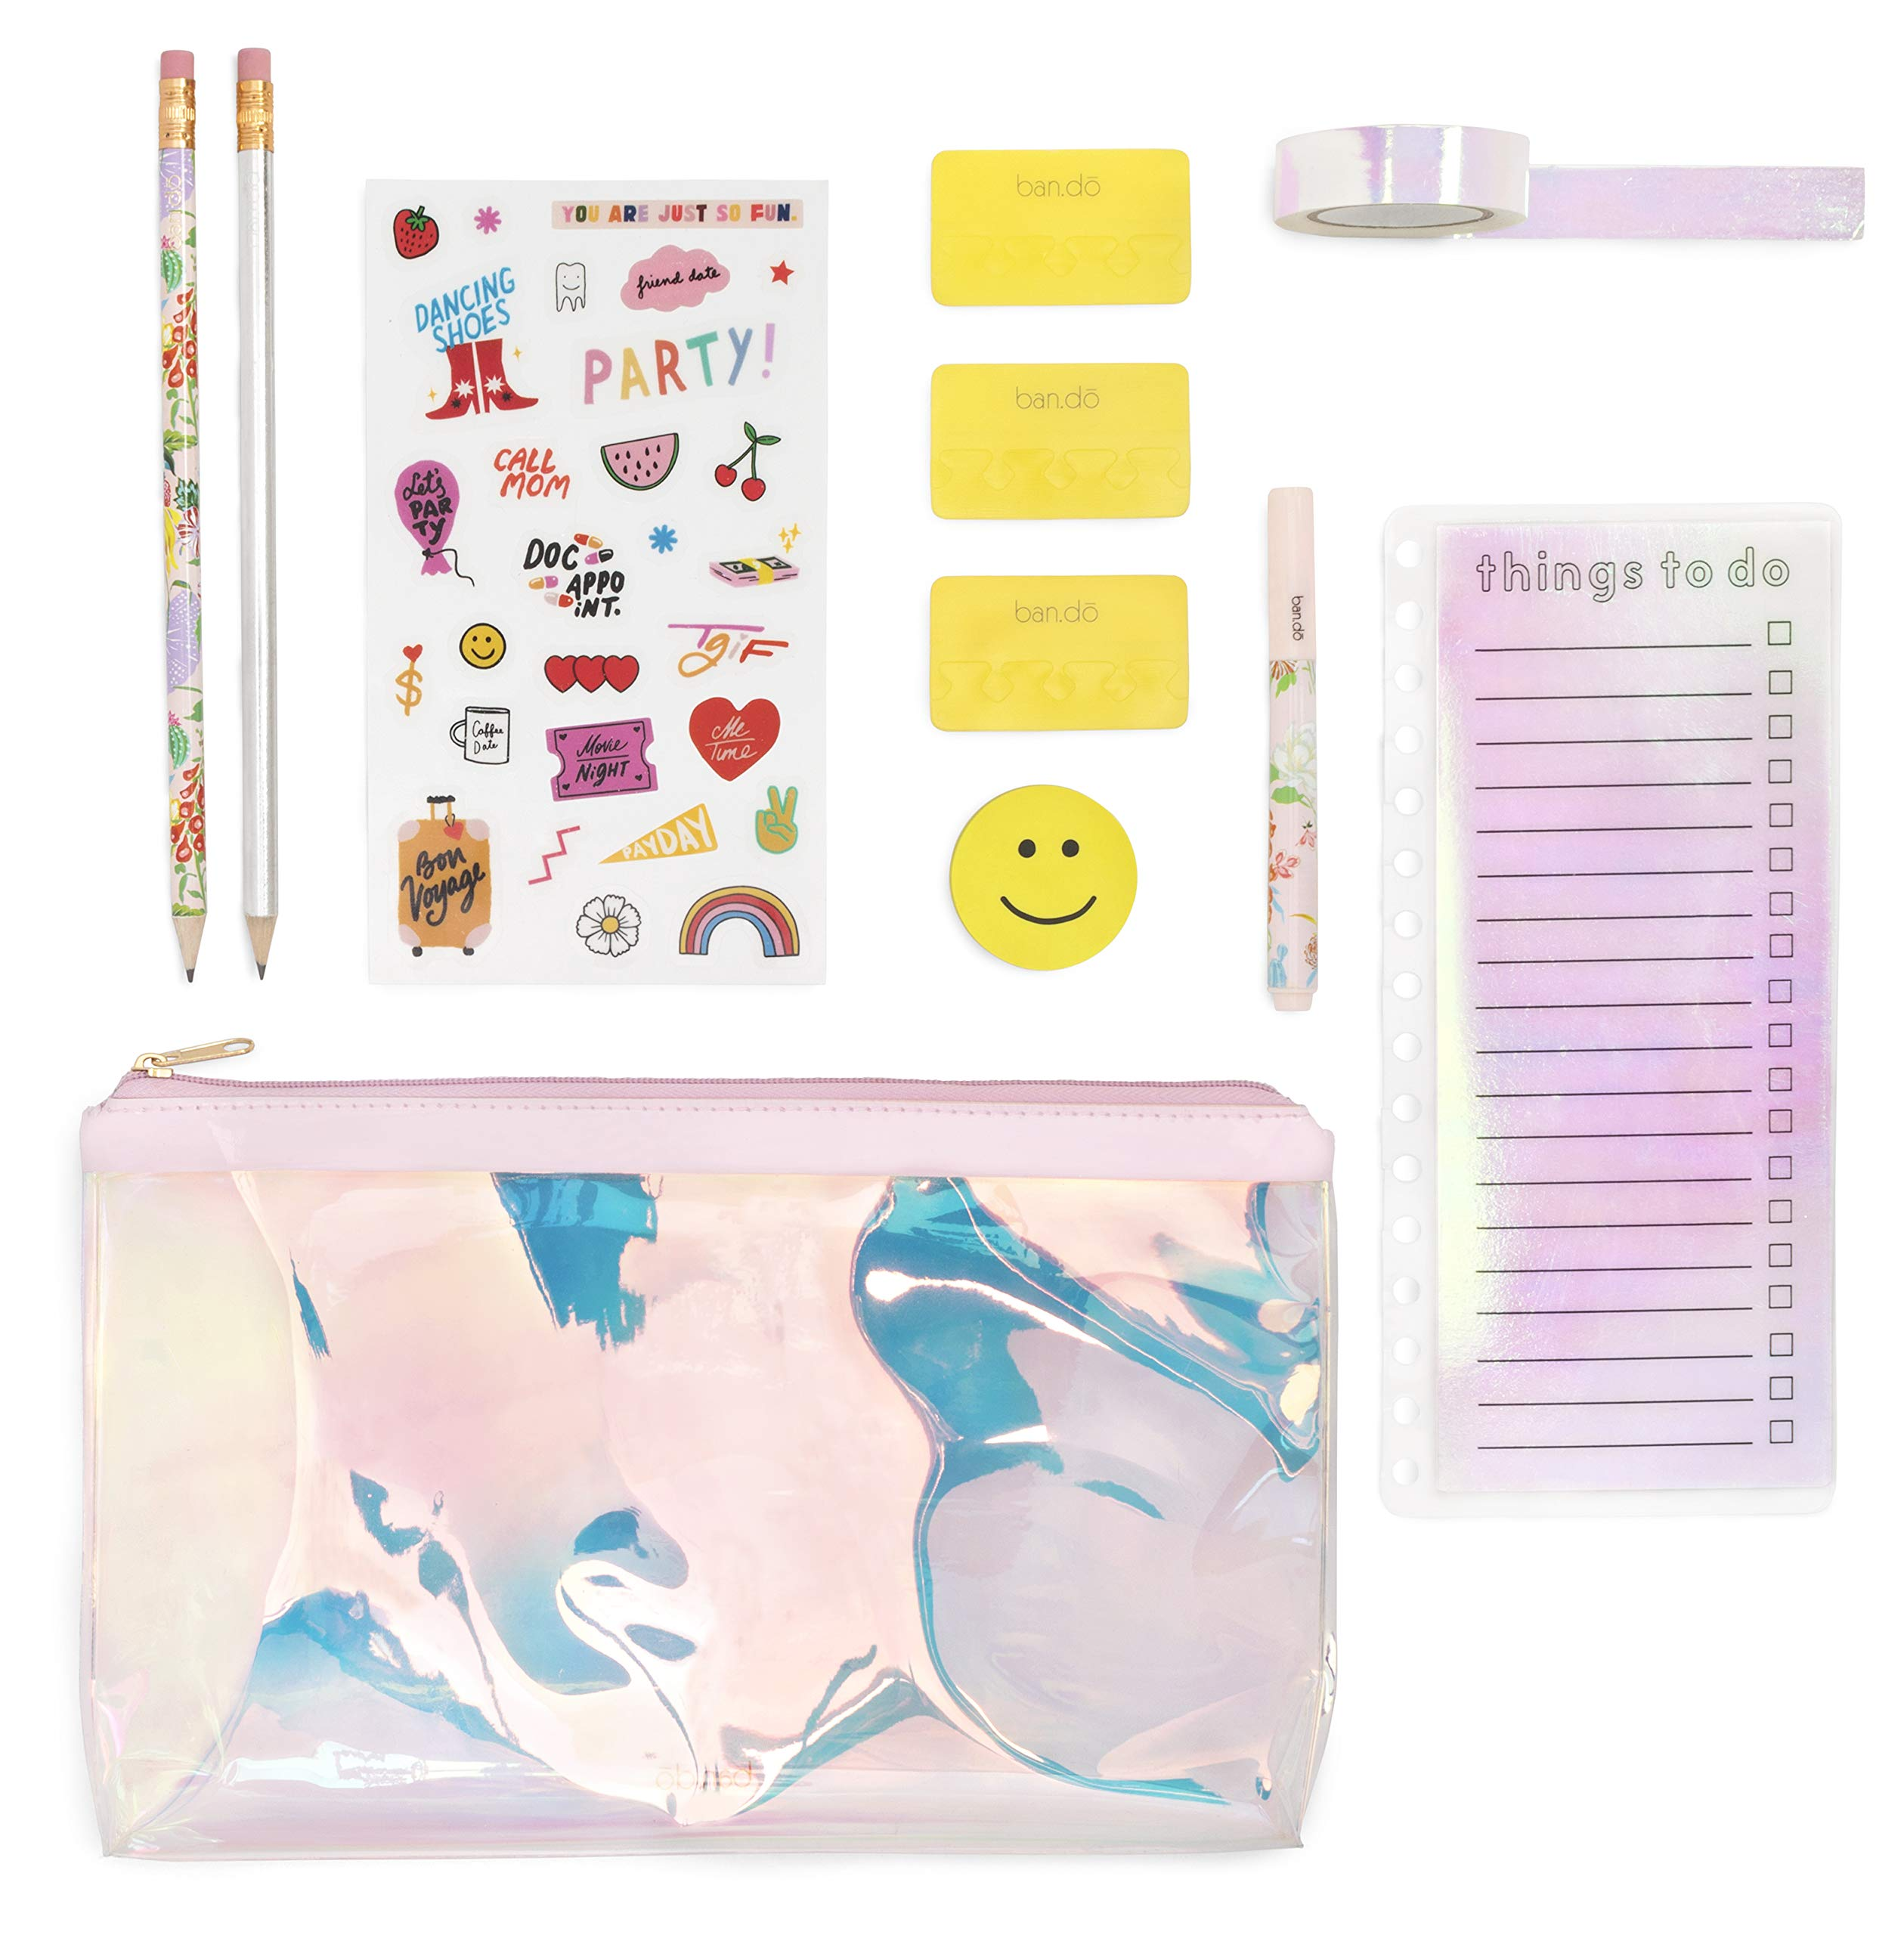 Ban.do Ultimate Planner Pack | Pencil Pouch with Stickers, Paper Tape, Pencils, and More | Pearlescent by ban.do